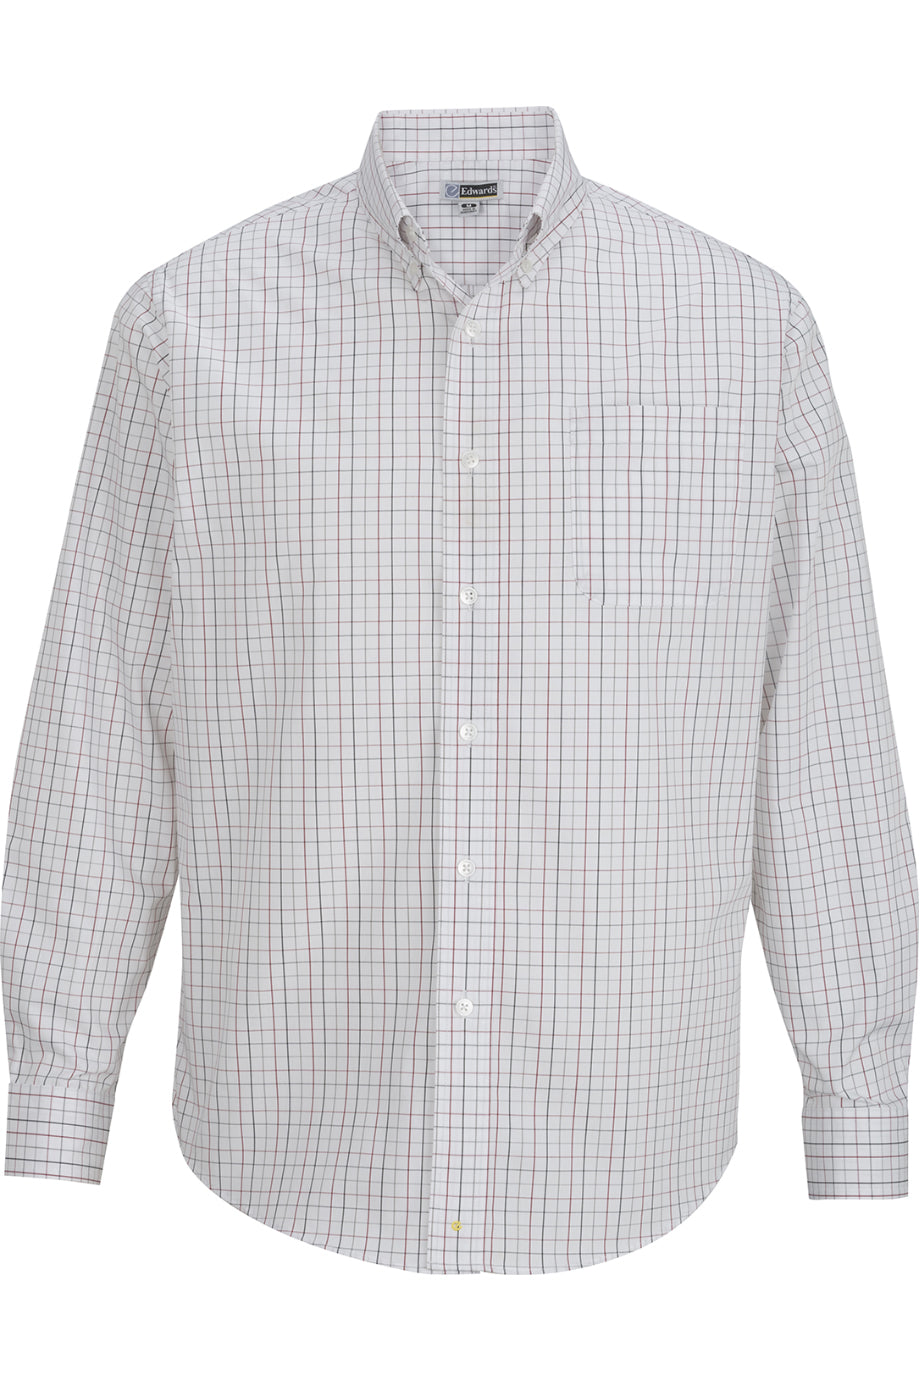 Brick Edwards Mens Tattersall Poplin Shirt